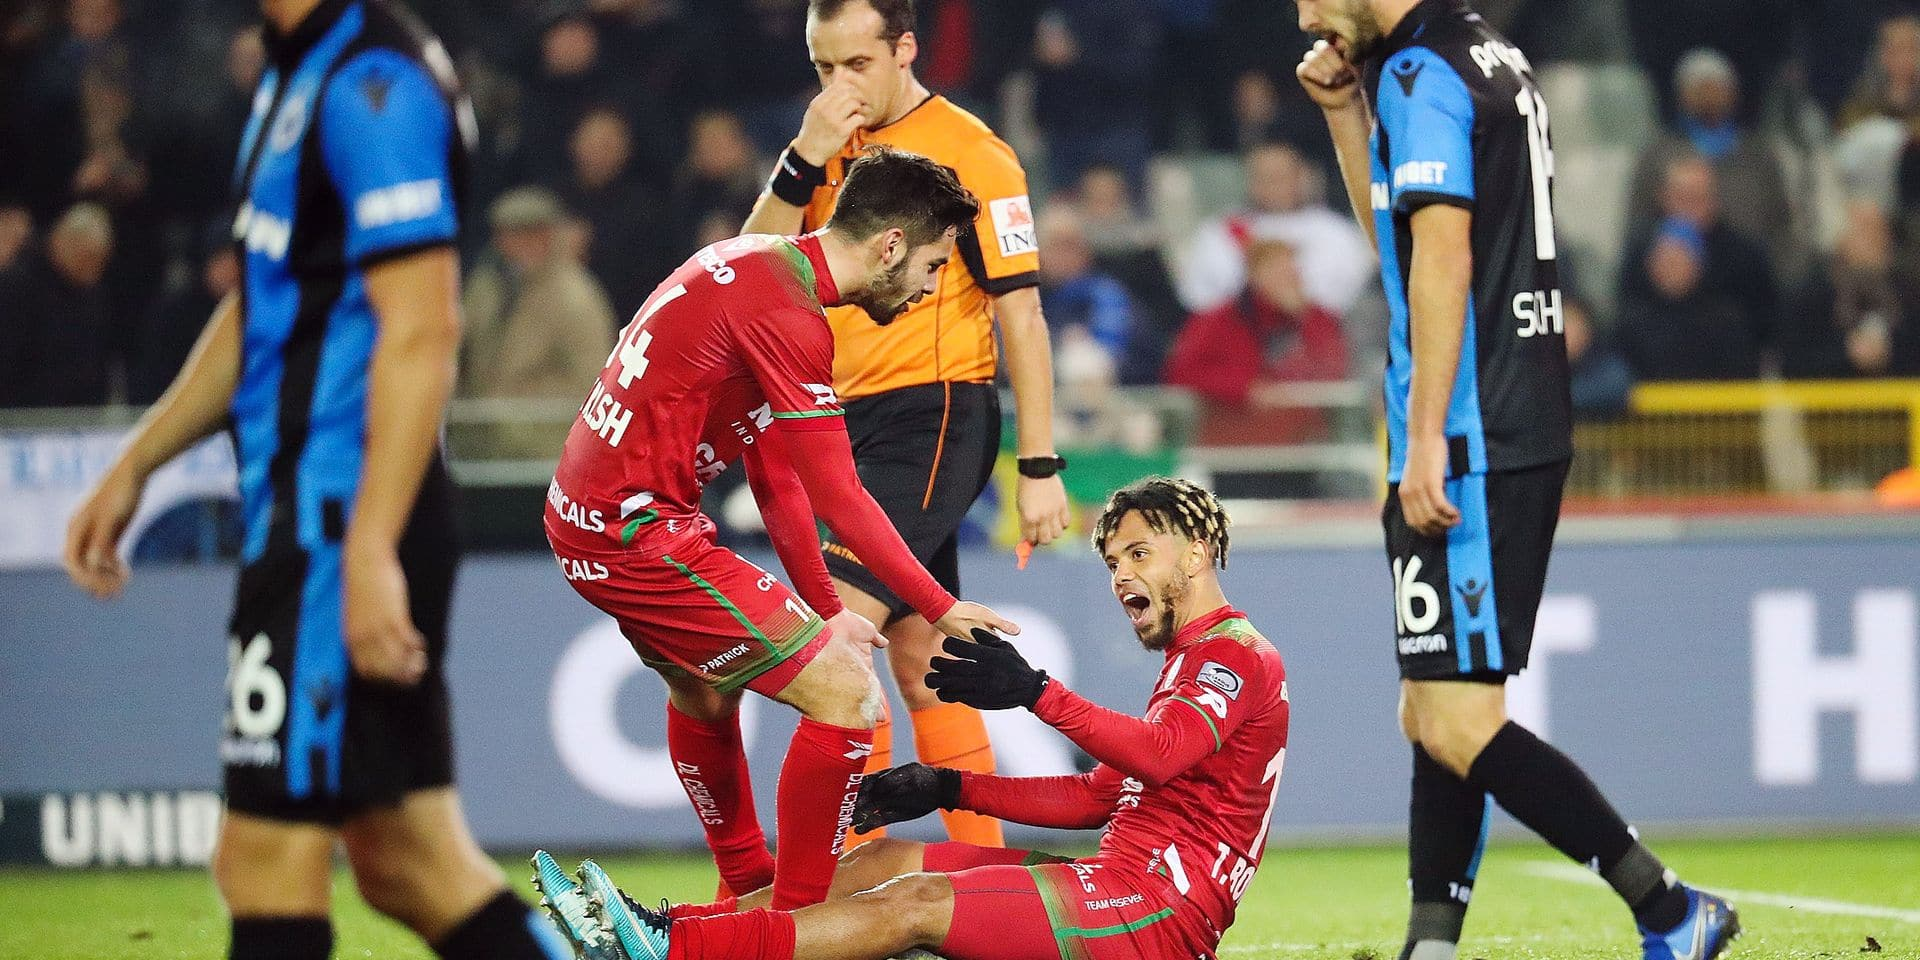 Essevee's Theo Bongonda celebrates after scoring during a soccer match between Club Brugge KSV and SV Zulte Waregem, Friday 23 November 2018 in Brugge, on the sixteenth day of the 'Jupiler Pro League' Belgian soccer championship season 2018-2019. BELGA PHOTO VIRGINIE LEFOUR